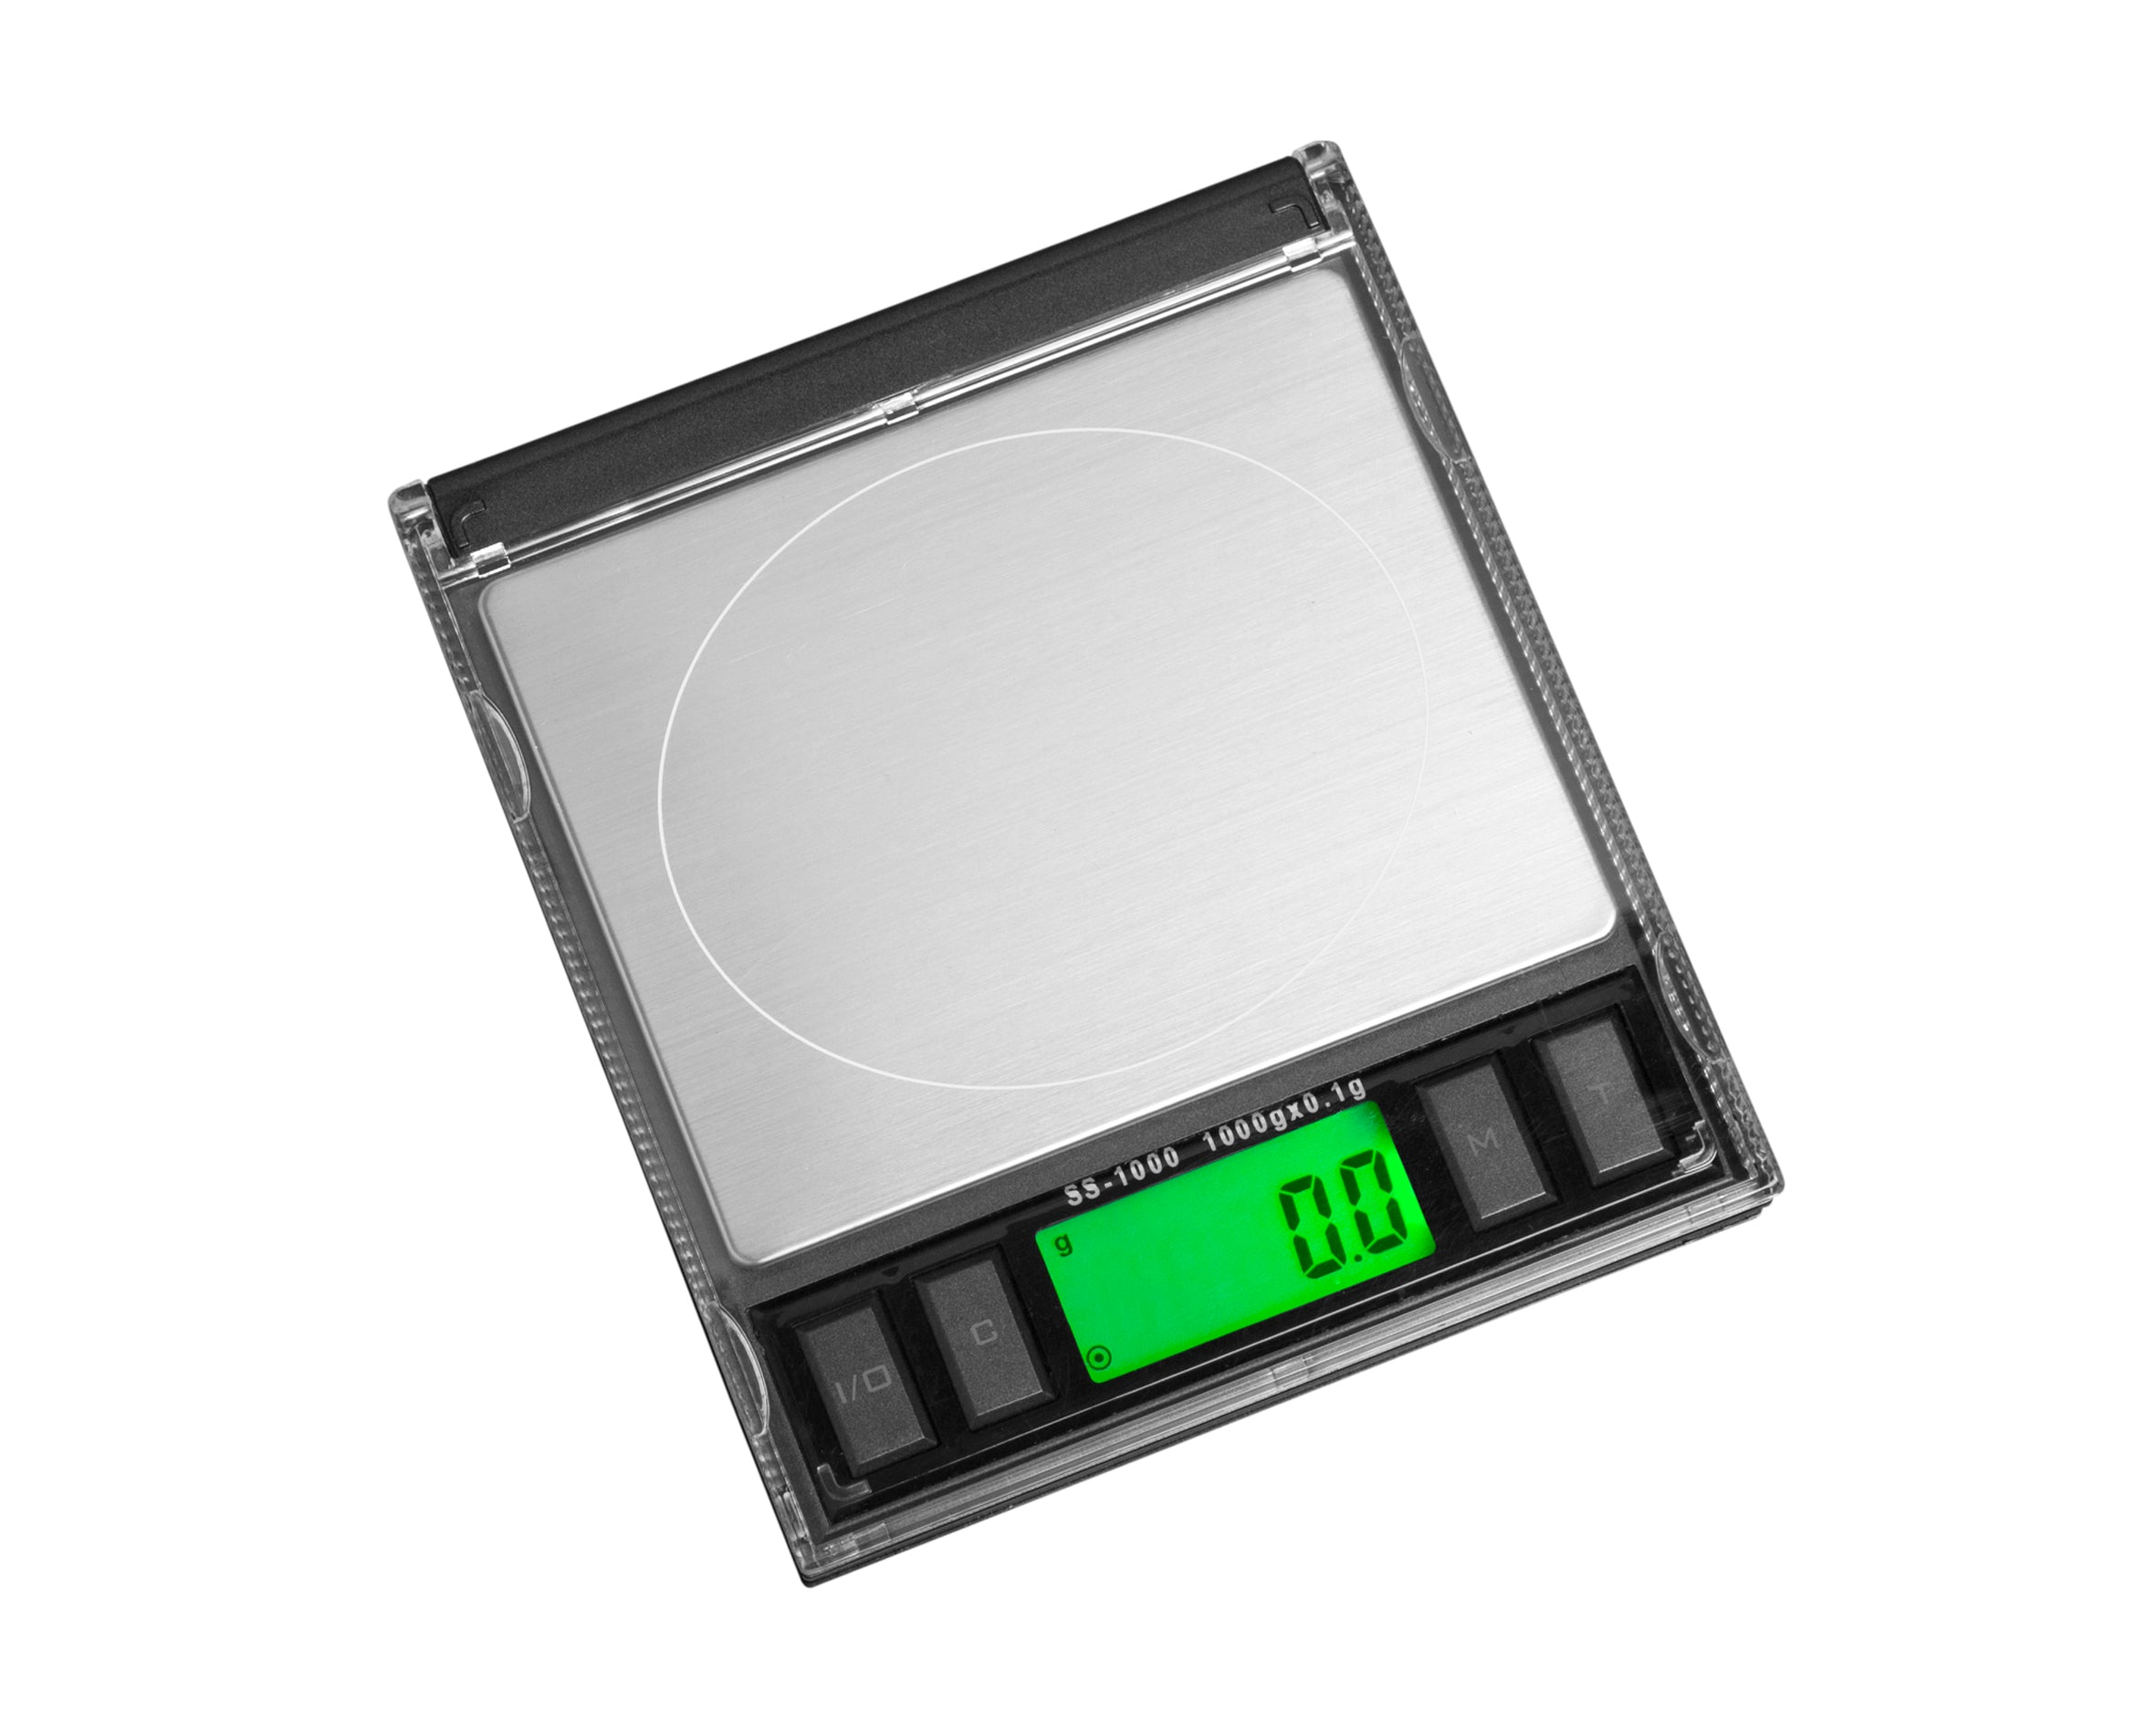 SS-1000 On Balance Square Scale 1000g x 0.1g